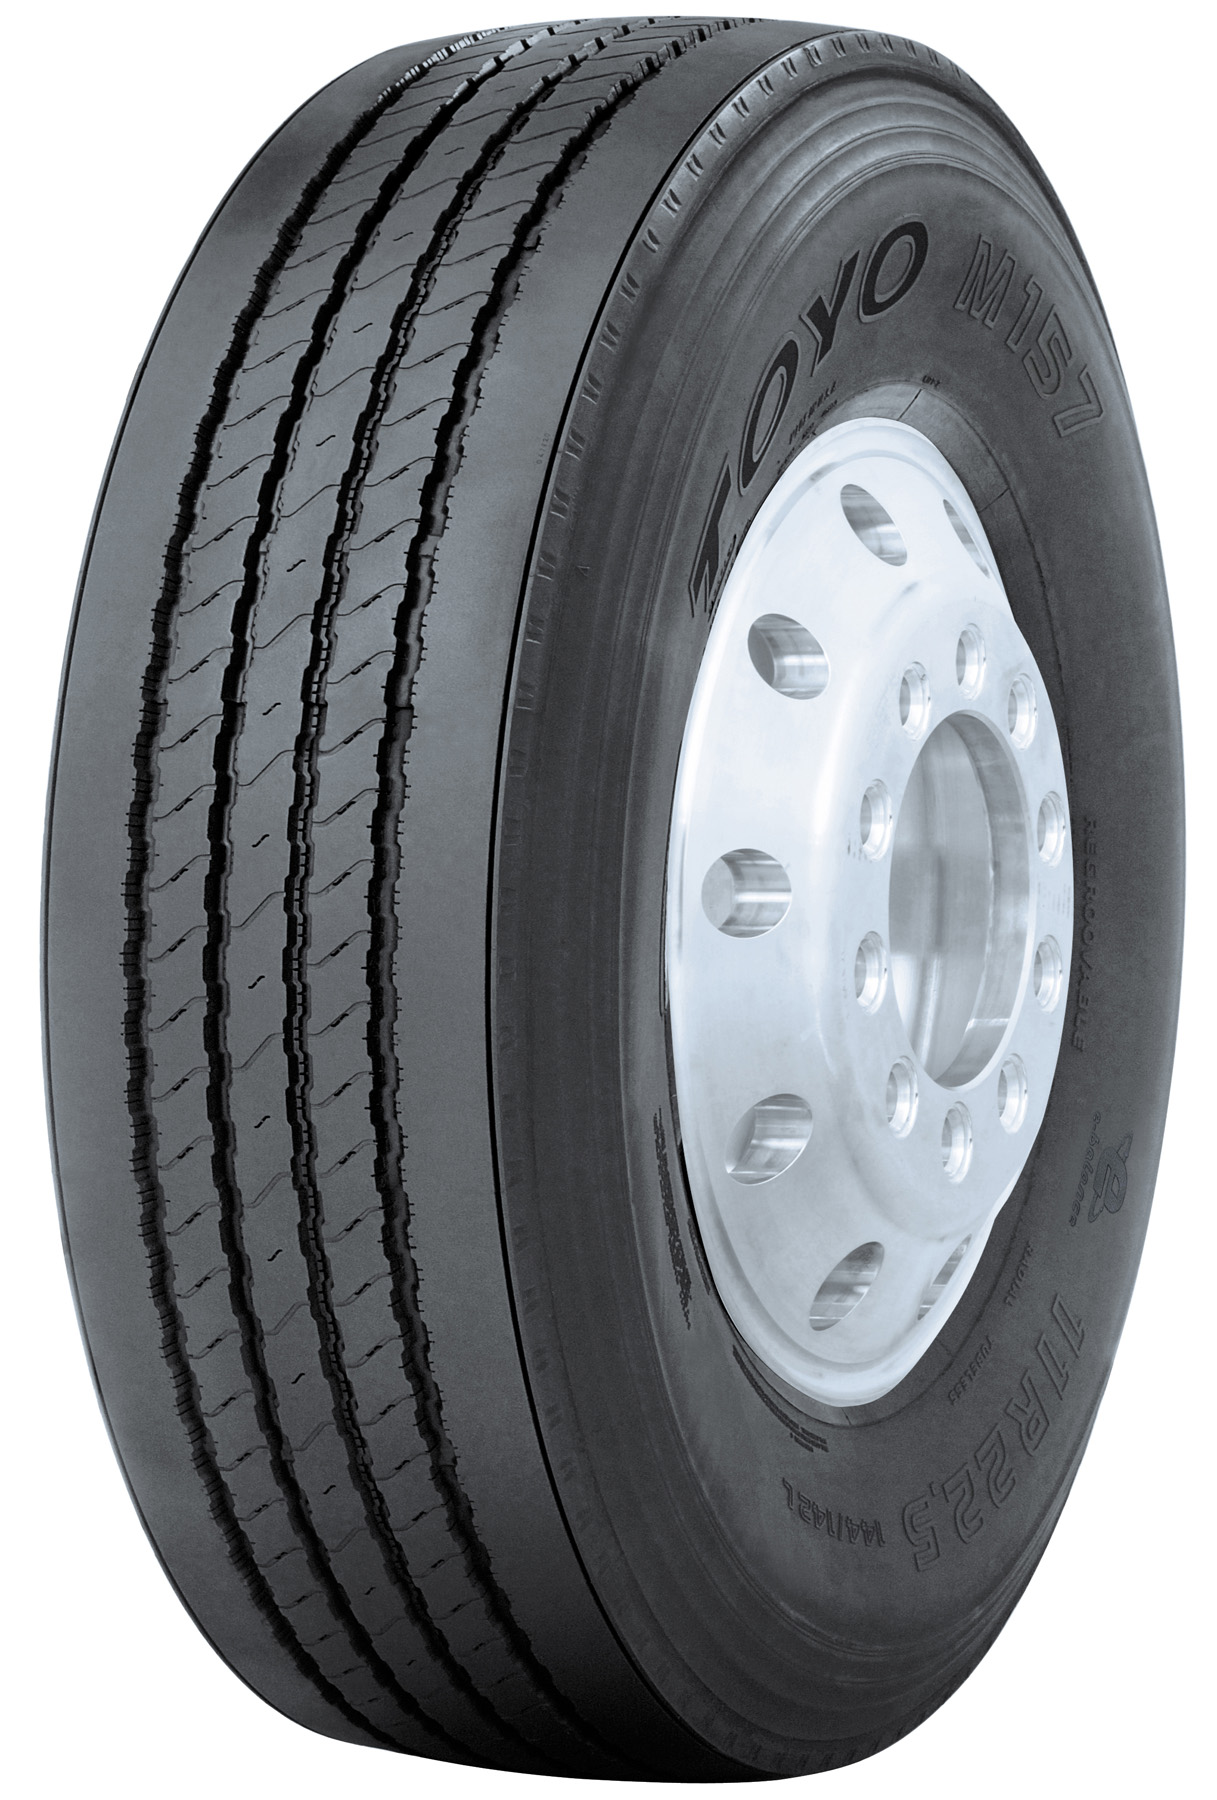 Toyo M157 truck tire fights wear, saves fuel